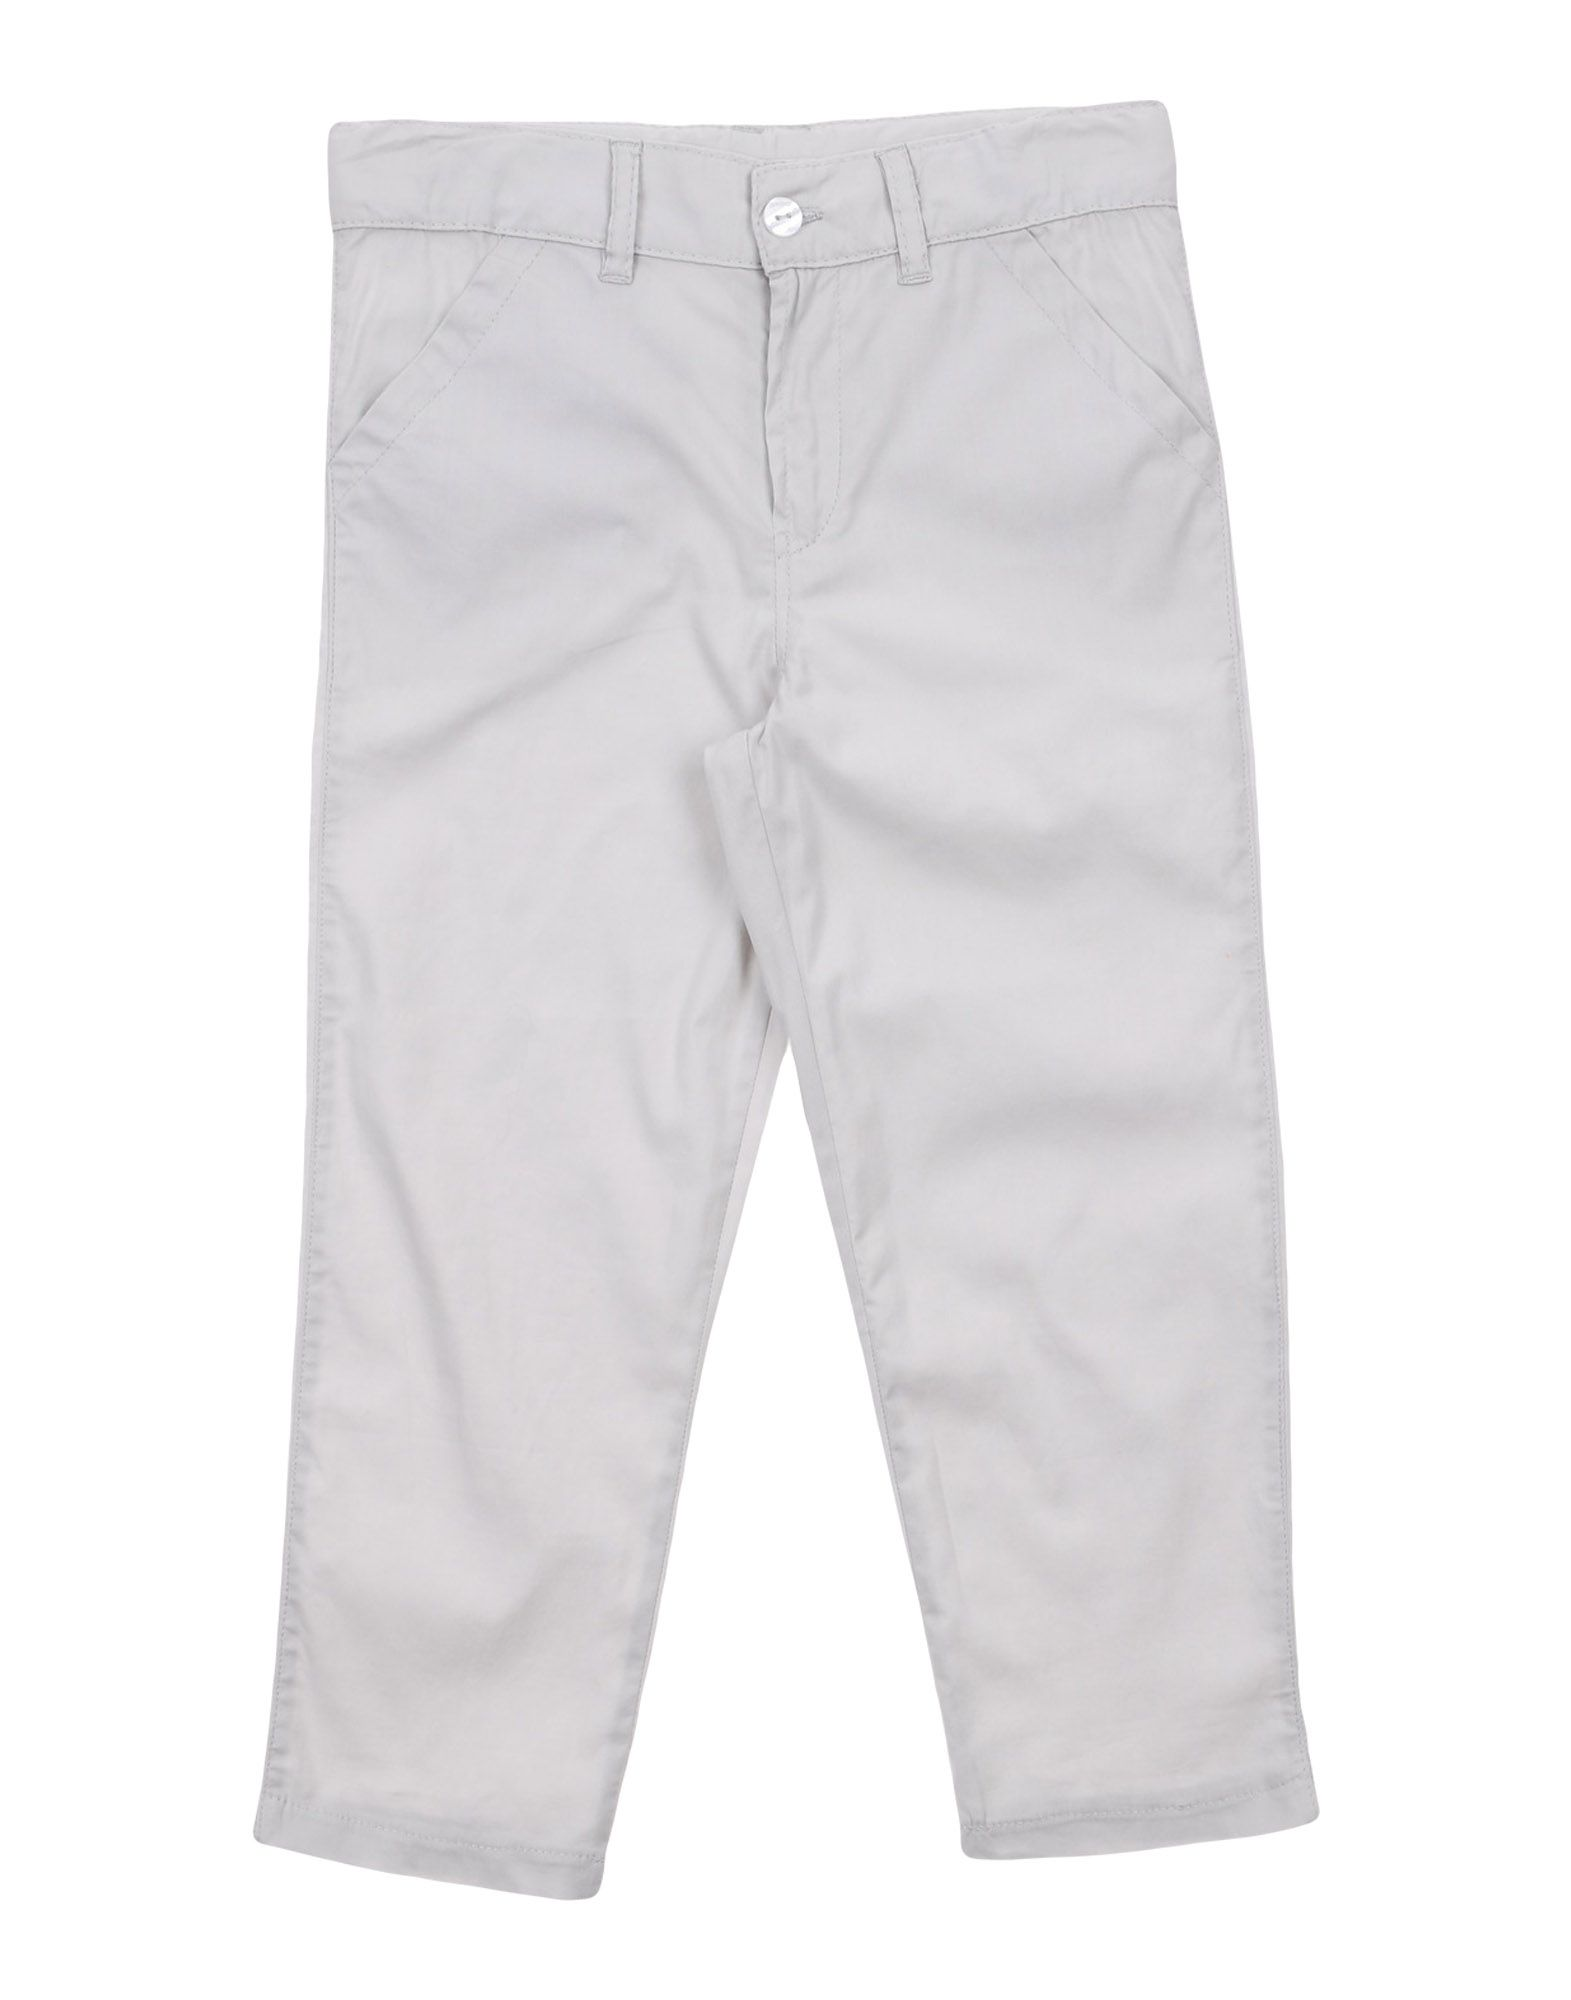 Coccodé Kids' Casual Pants In Gray